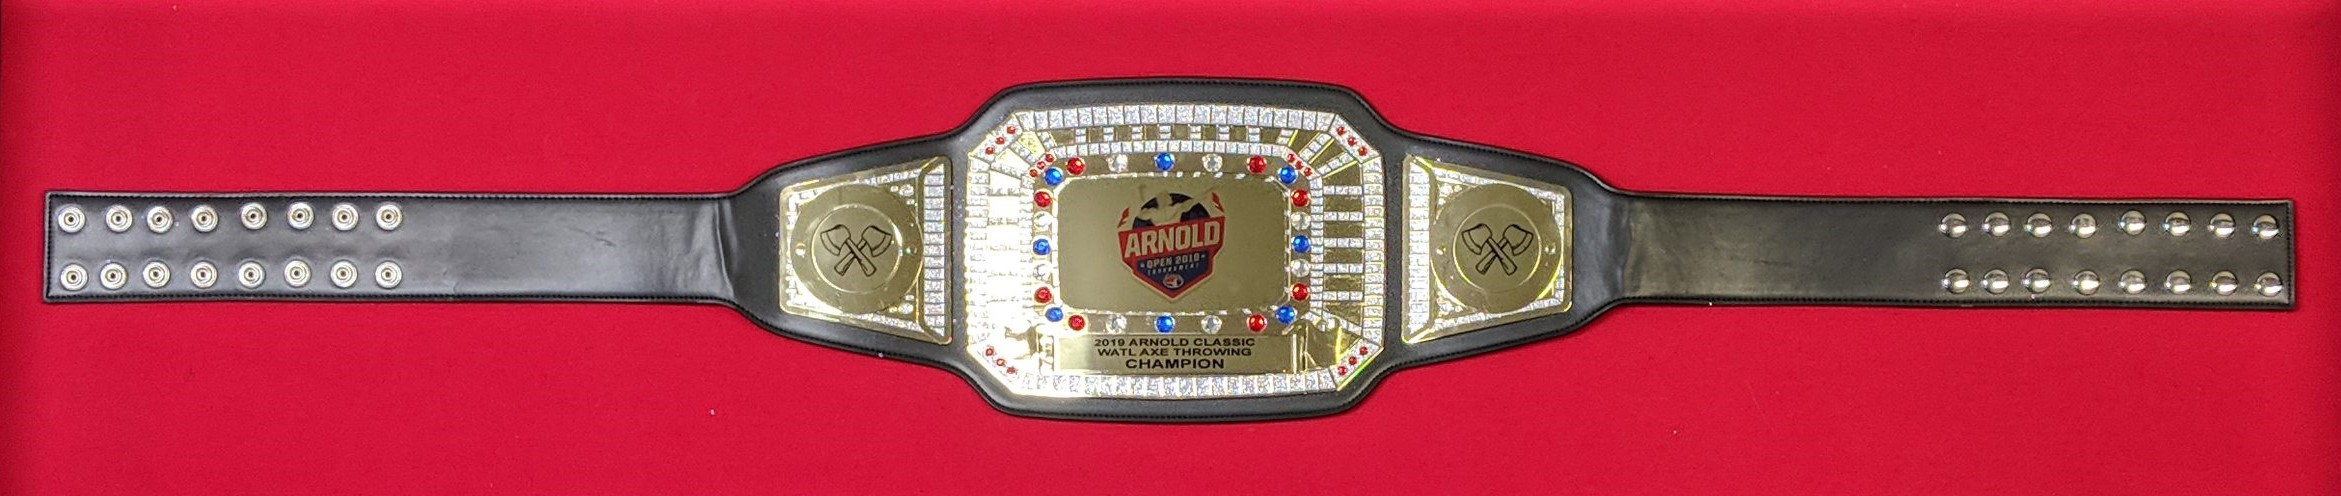 2019 Arnold Axe Throwing Championship Belt